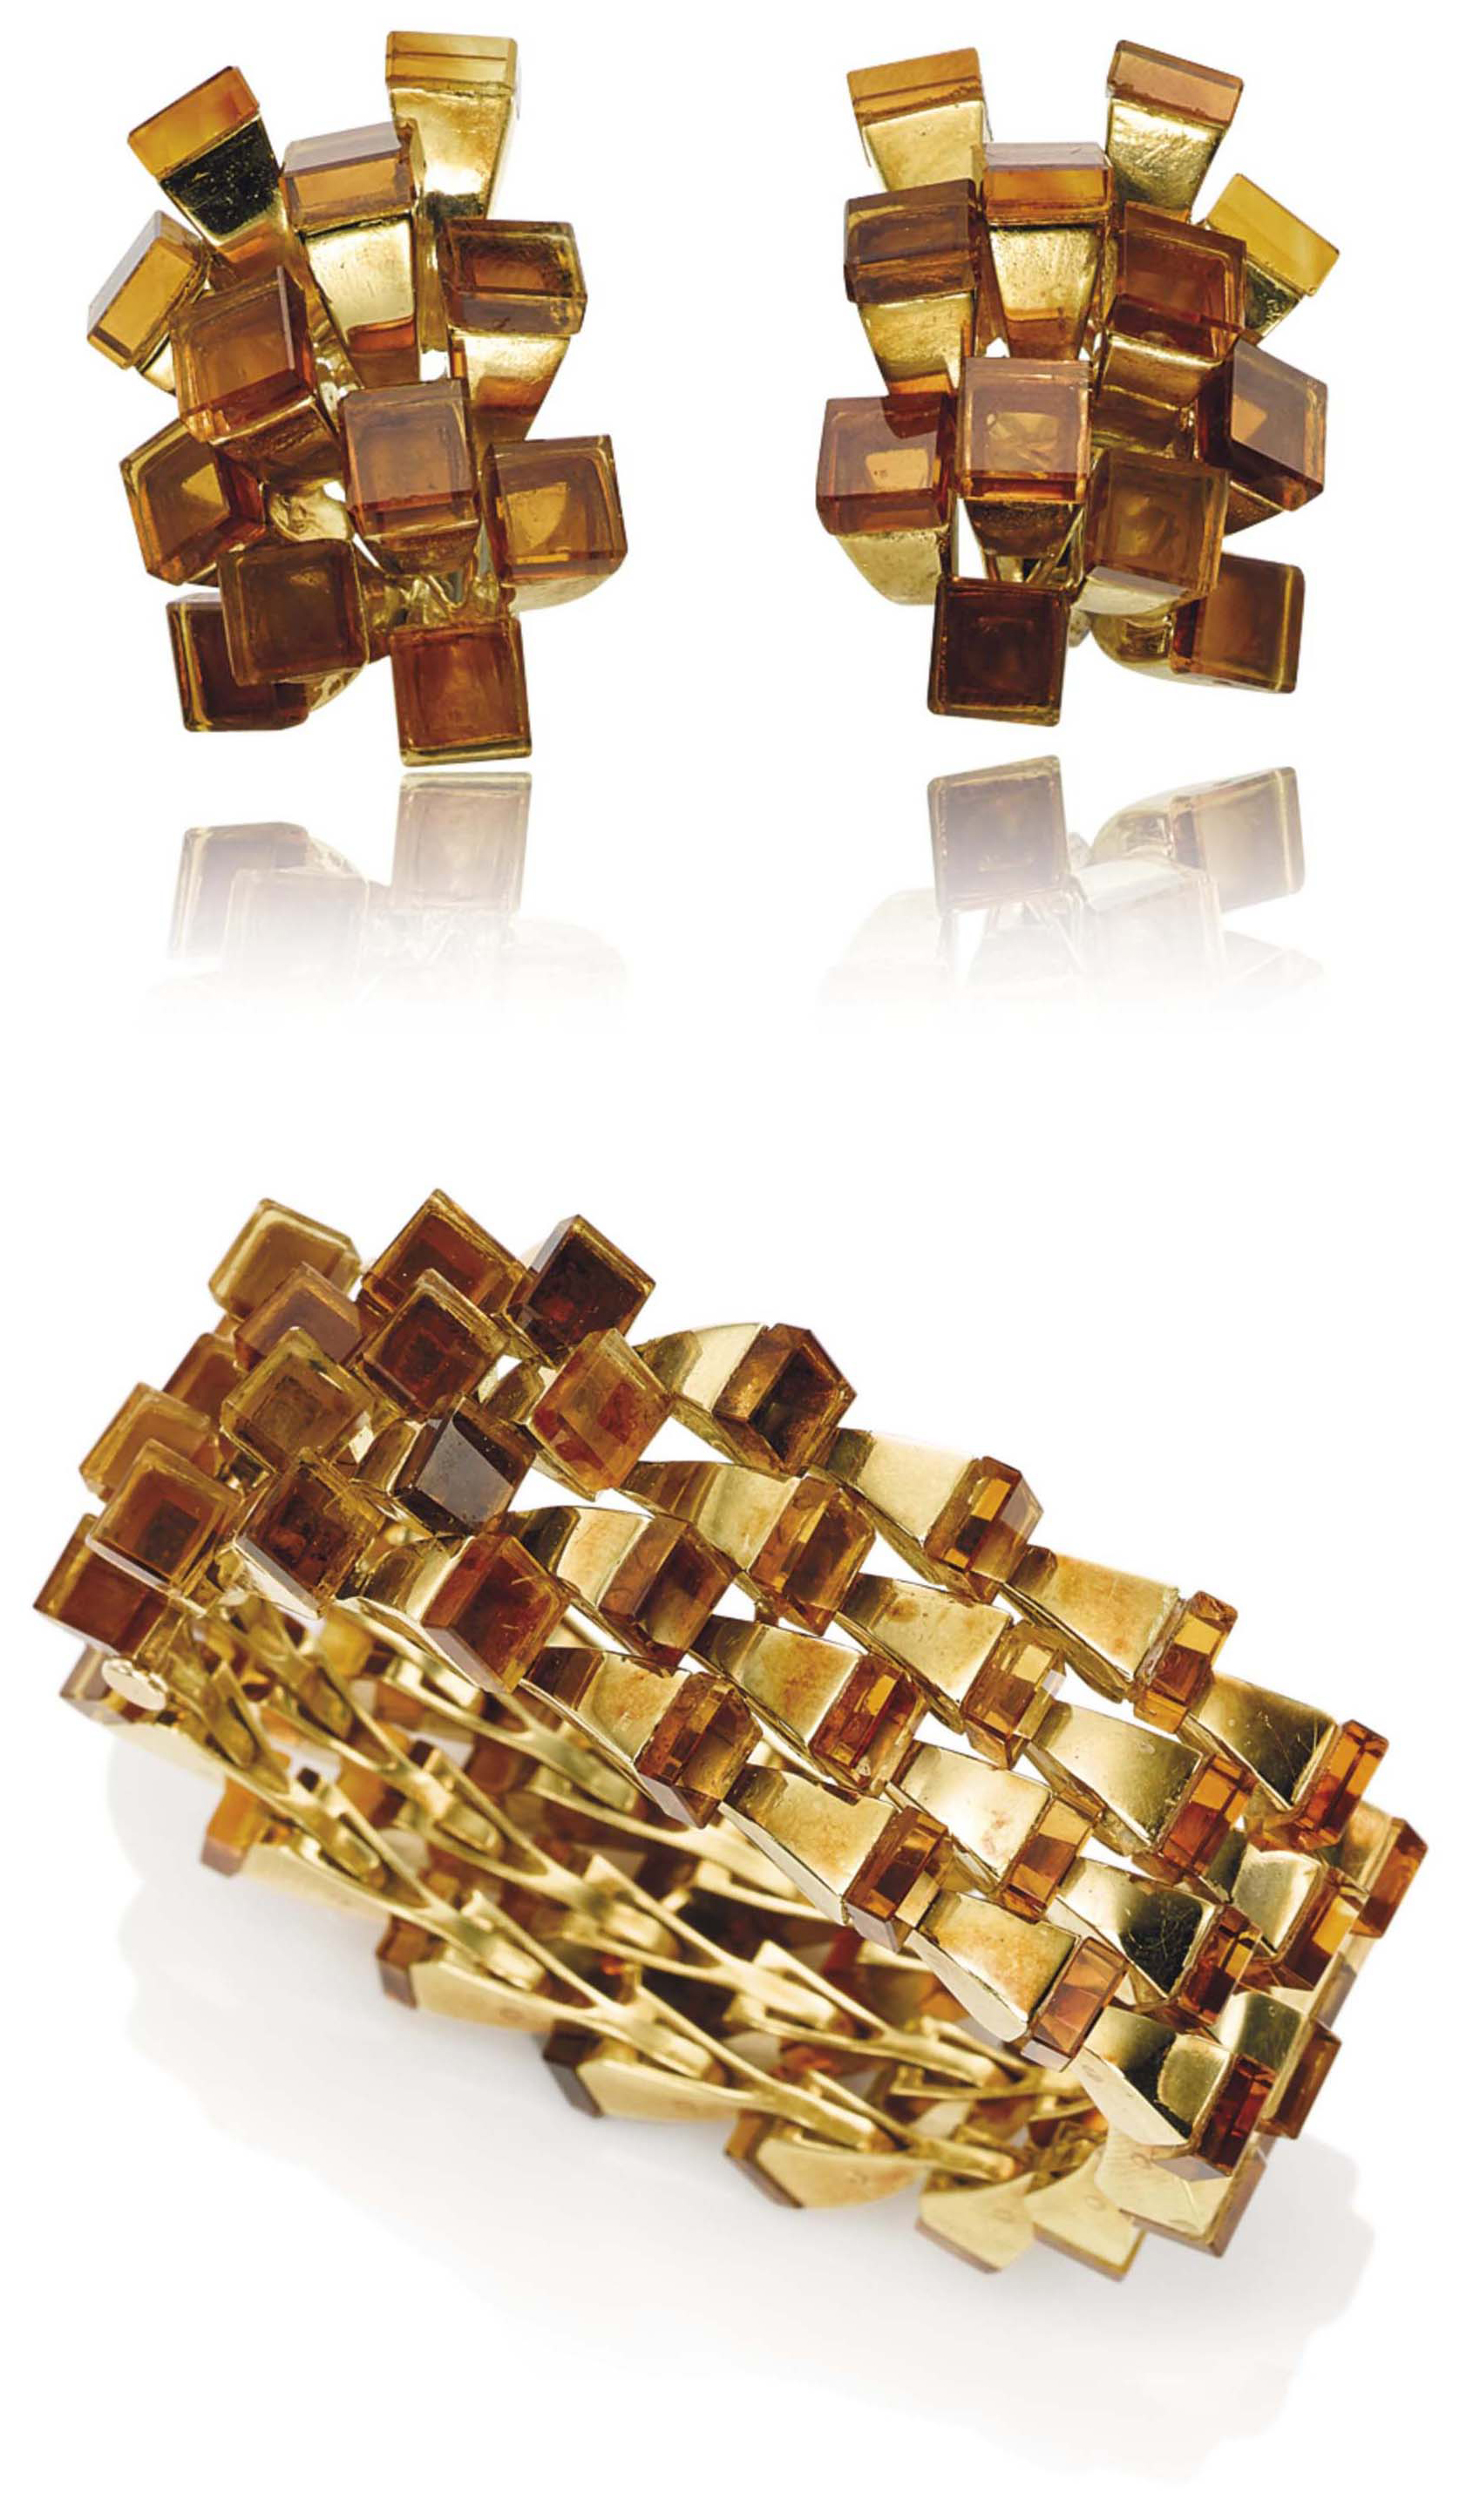 A SET OF CITRINE JEWELLERY, BY ALDO CIPULLO, FOR CARTIER